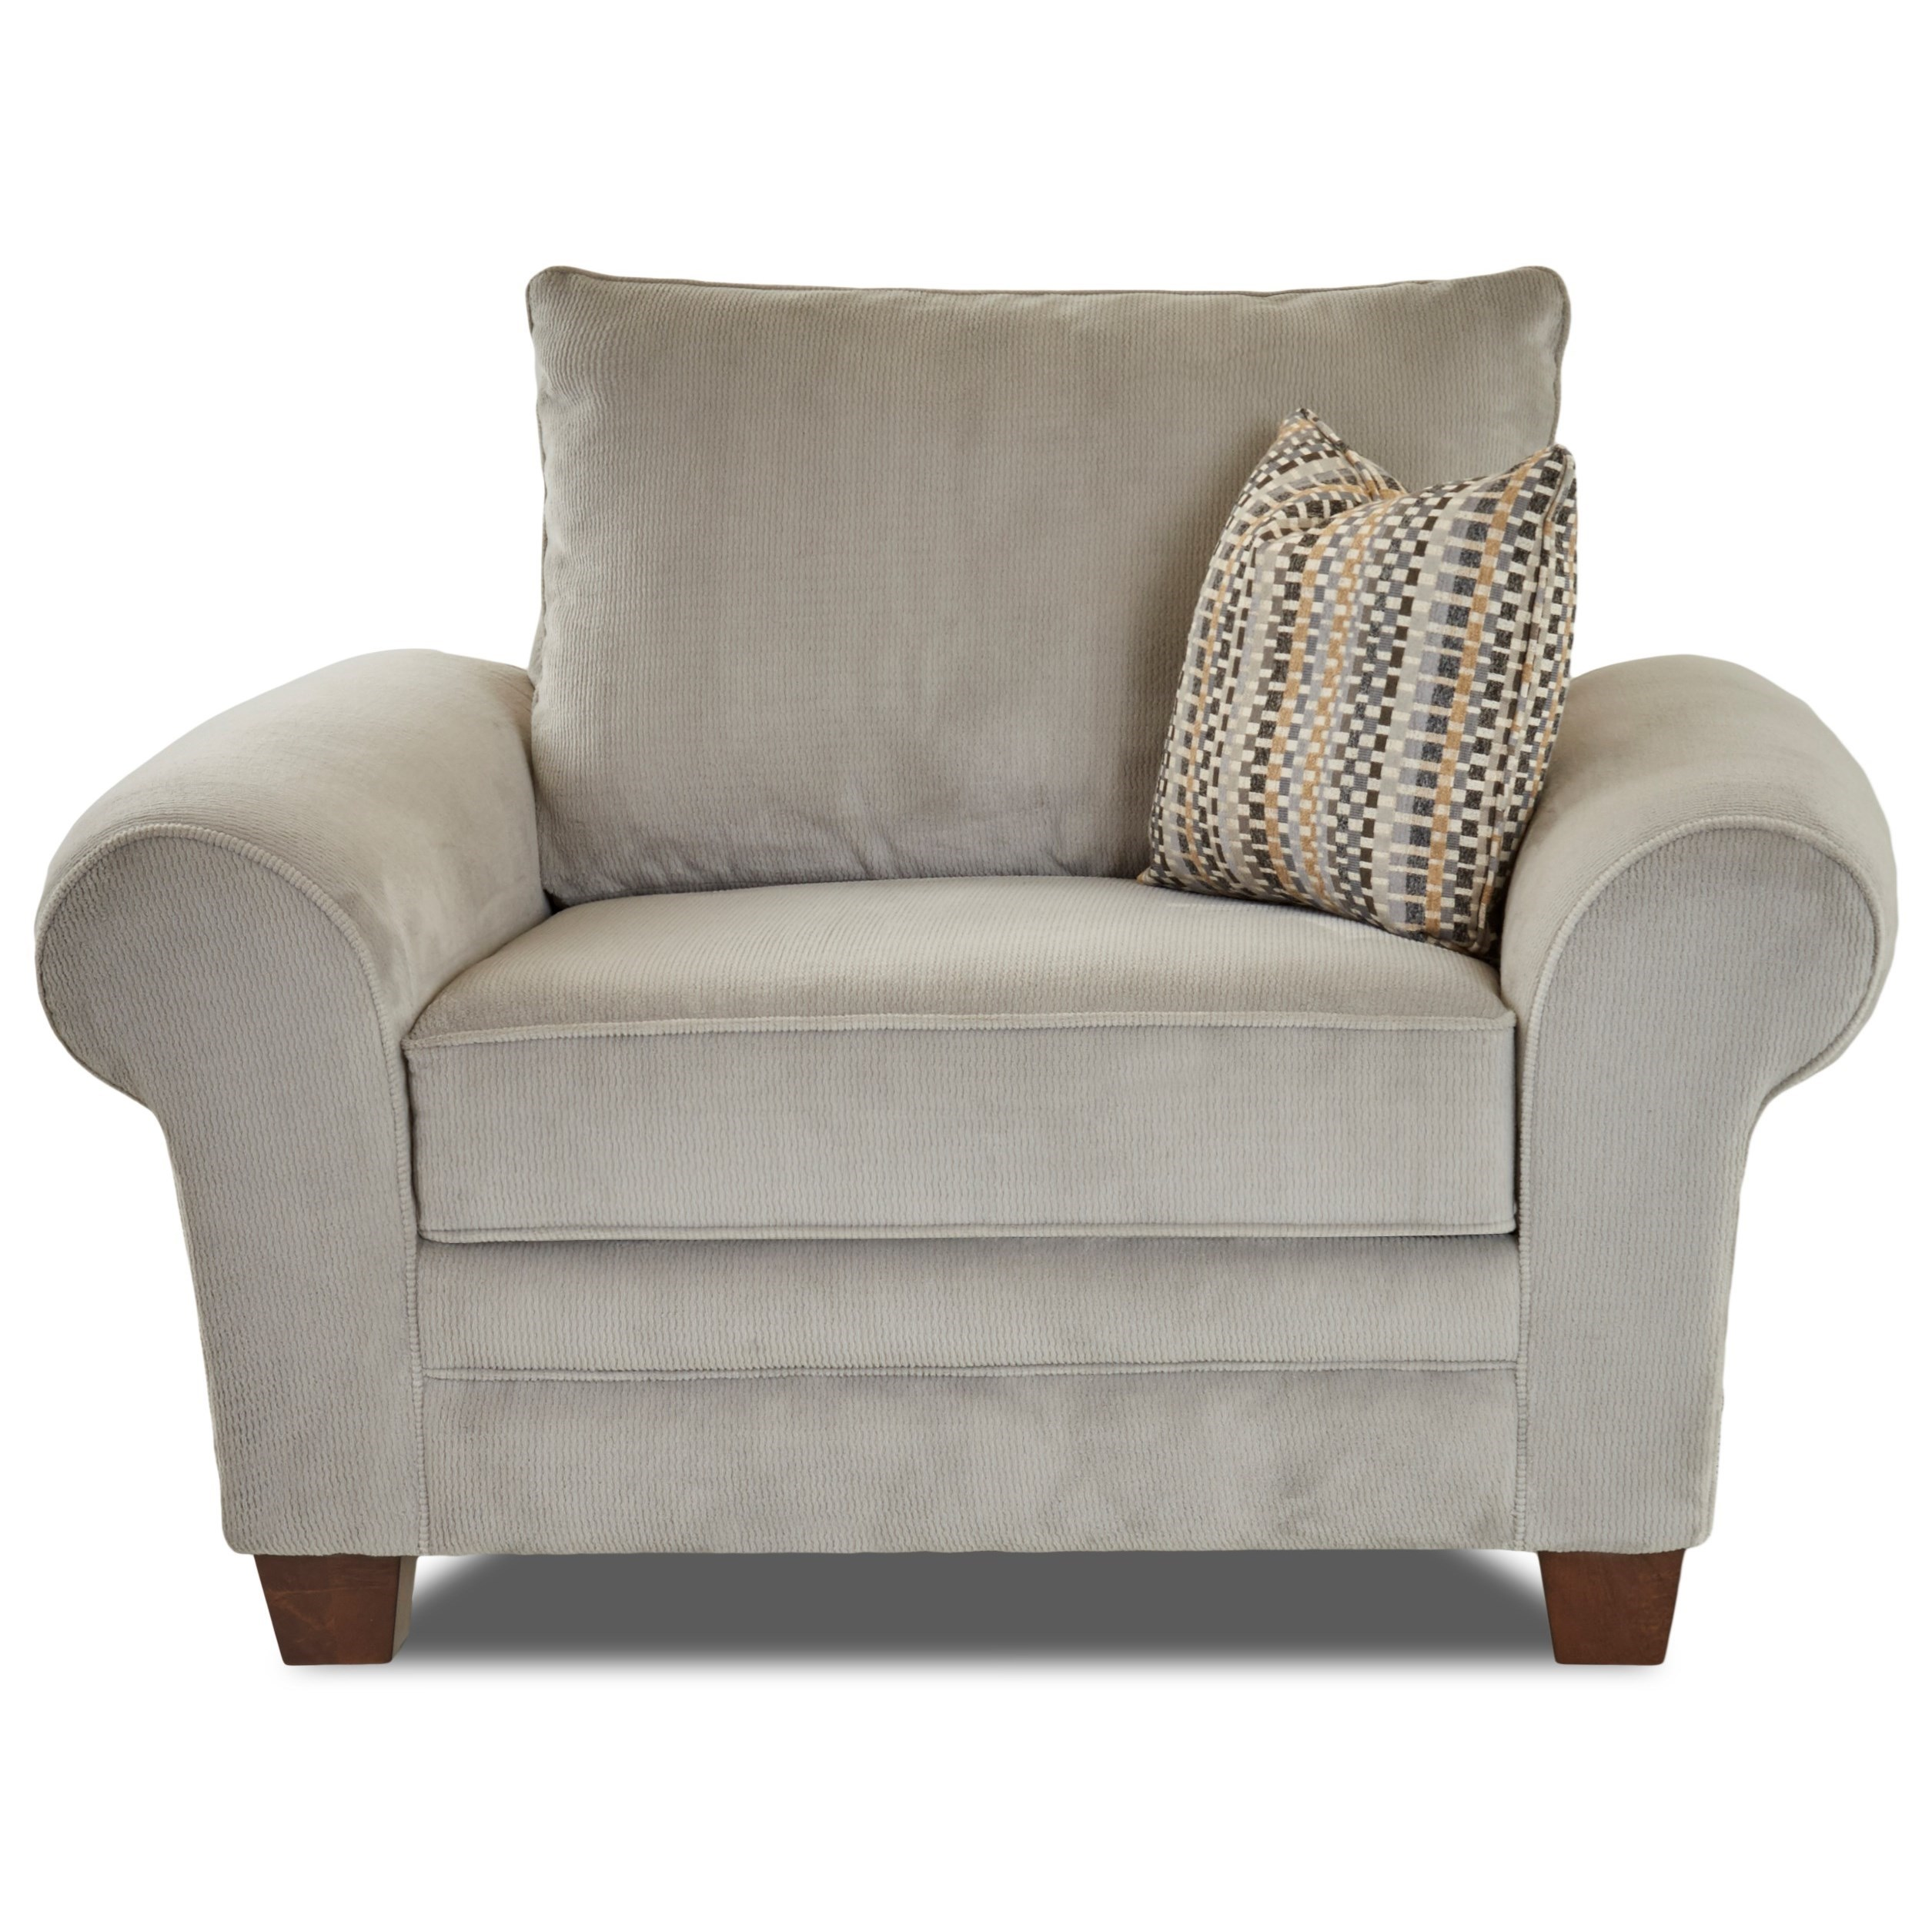 Klaussner Kazler Oversized Plush Chair With Pillows